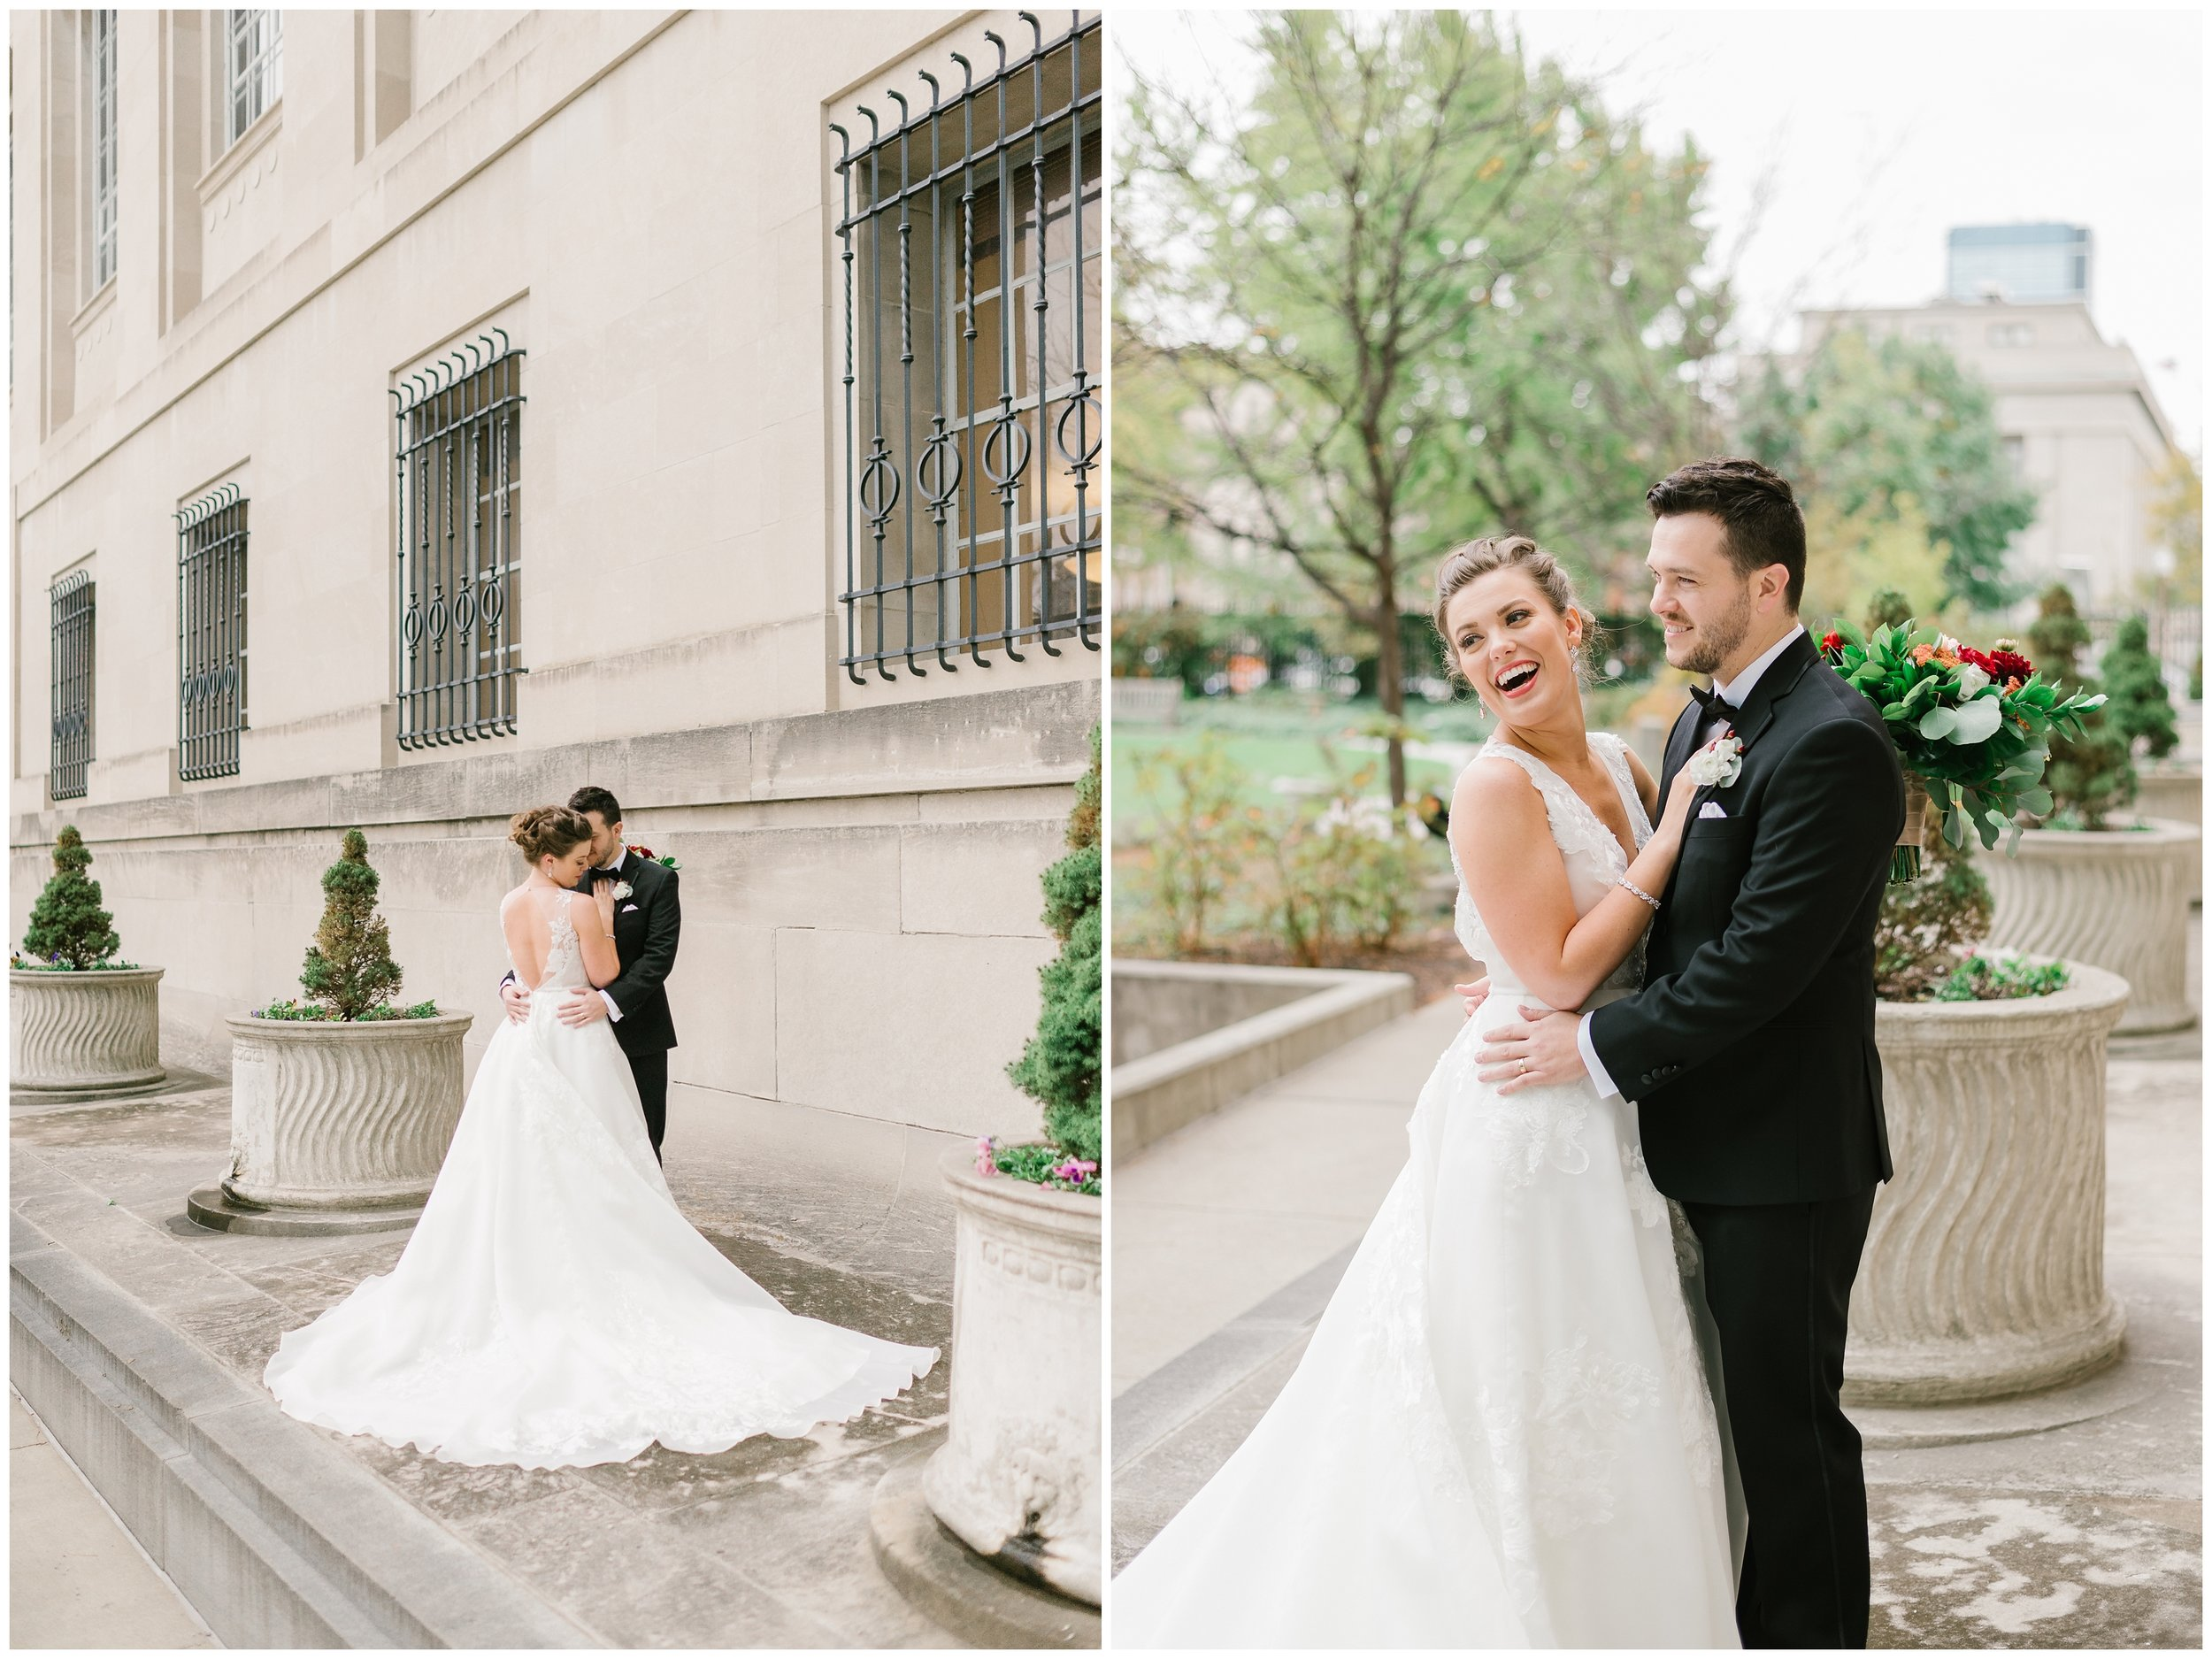 Rebecca_Shehorn_Photography_Indianapolis_Wedding_Photographer_7715.jpg